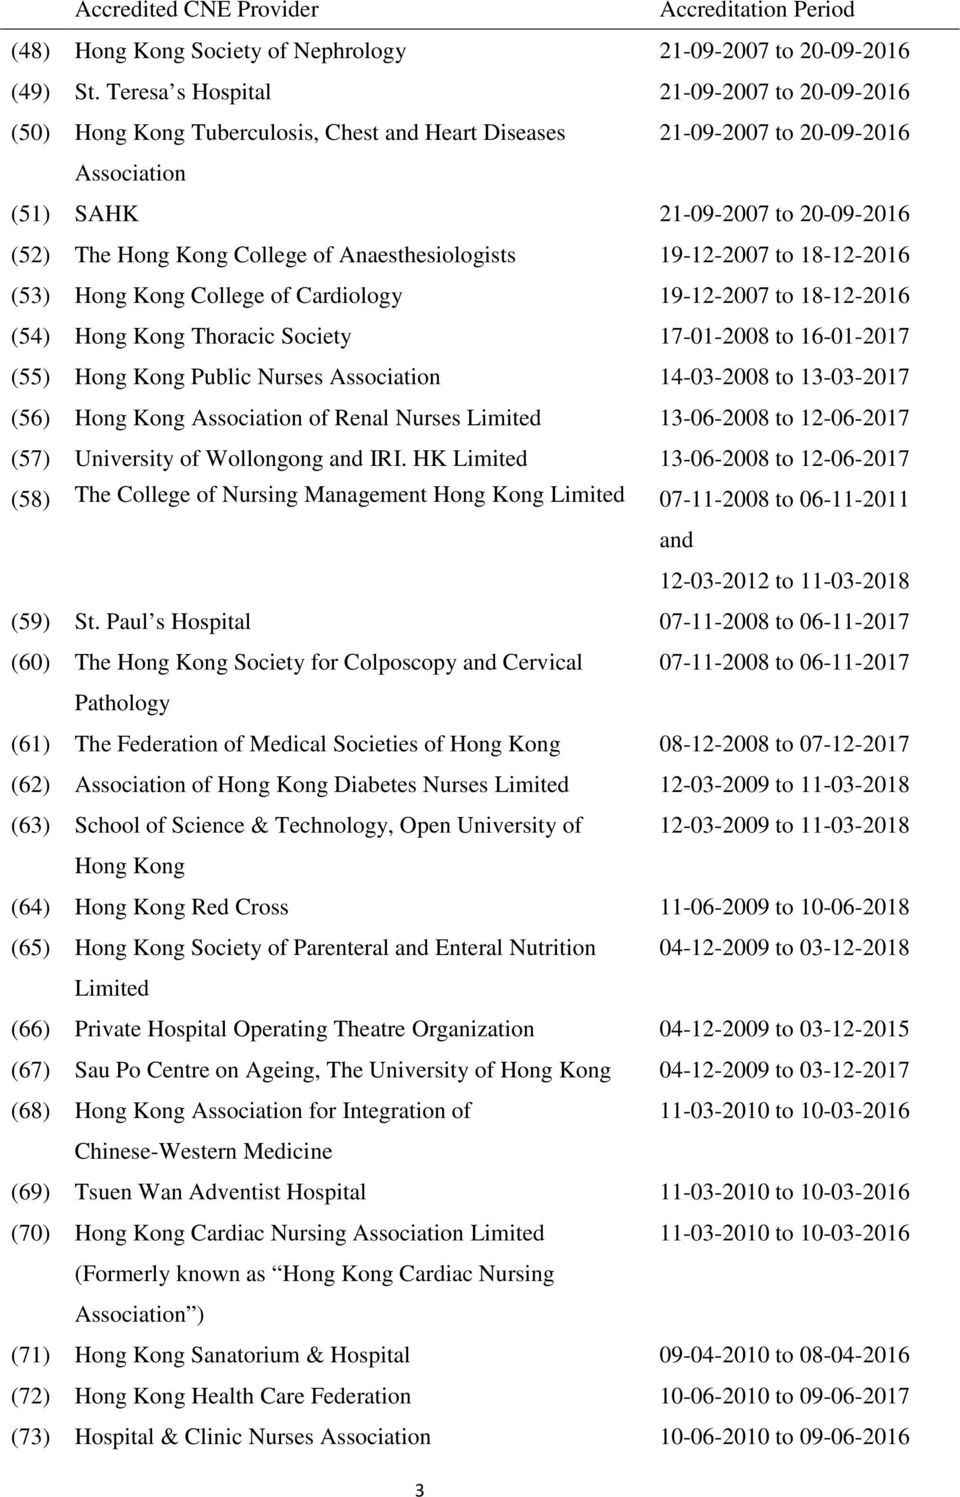 Anaesthesiologists 19-12-2007 to 18-12-2016 (53) Hong Kong College of Cardiology 19-12-2007 to 18-12-2016 (54) Hong Kong Thoracic Society 17-01-2008 to 16-01-2017 (55) Hong Kong Public Nurses